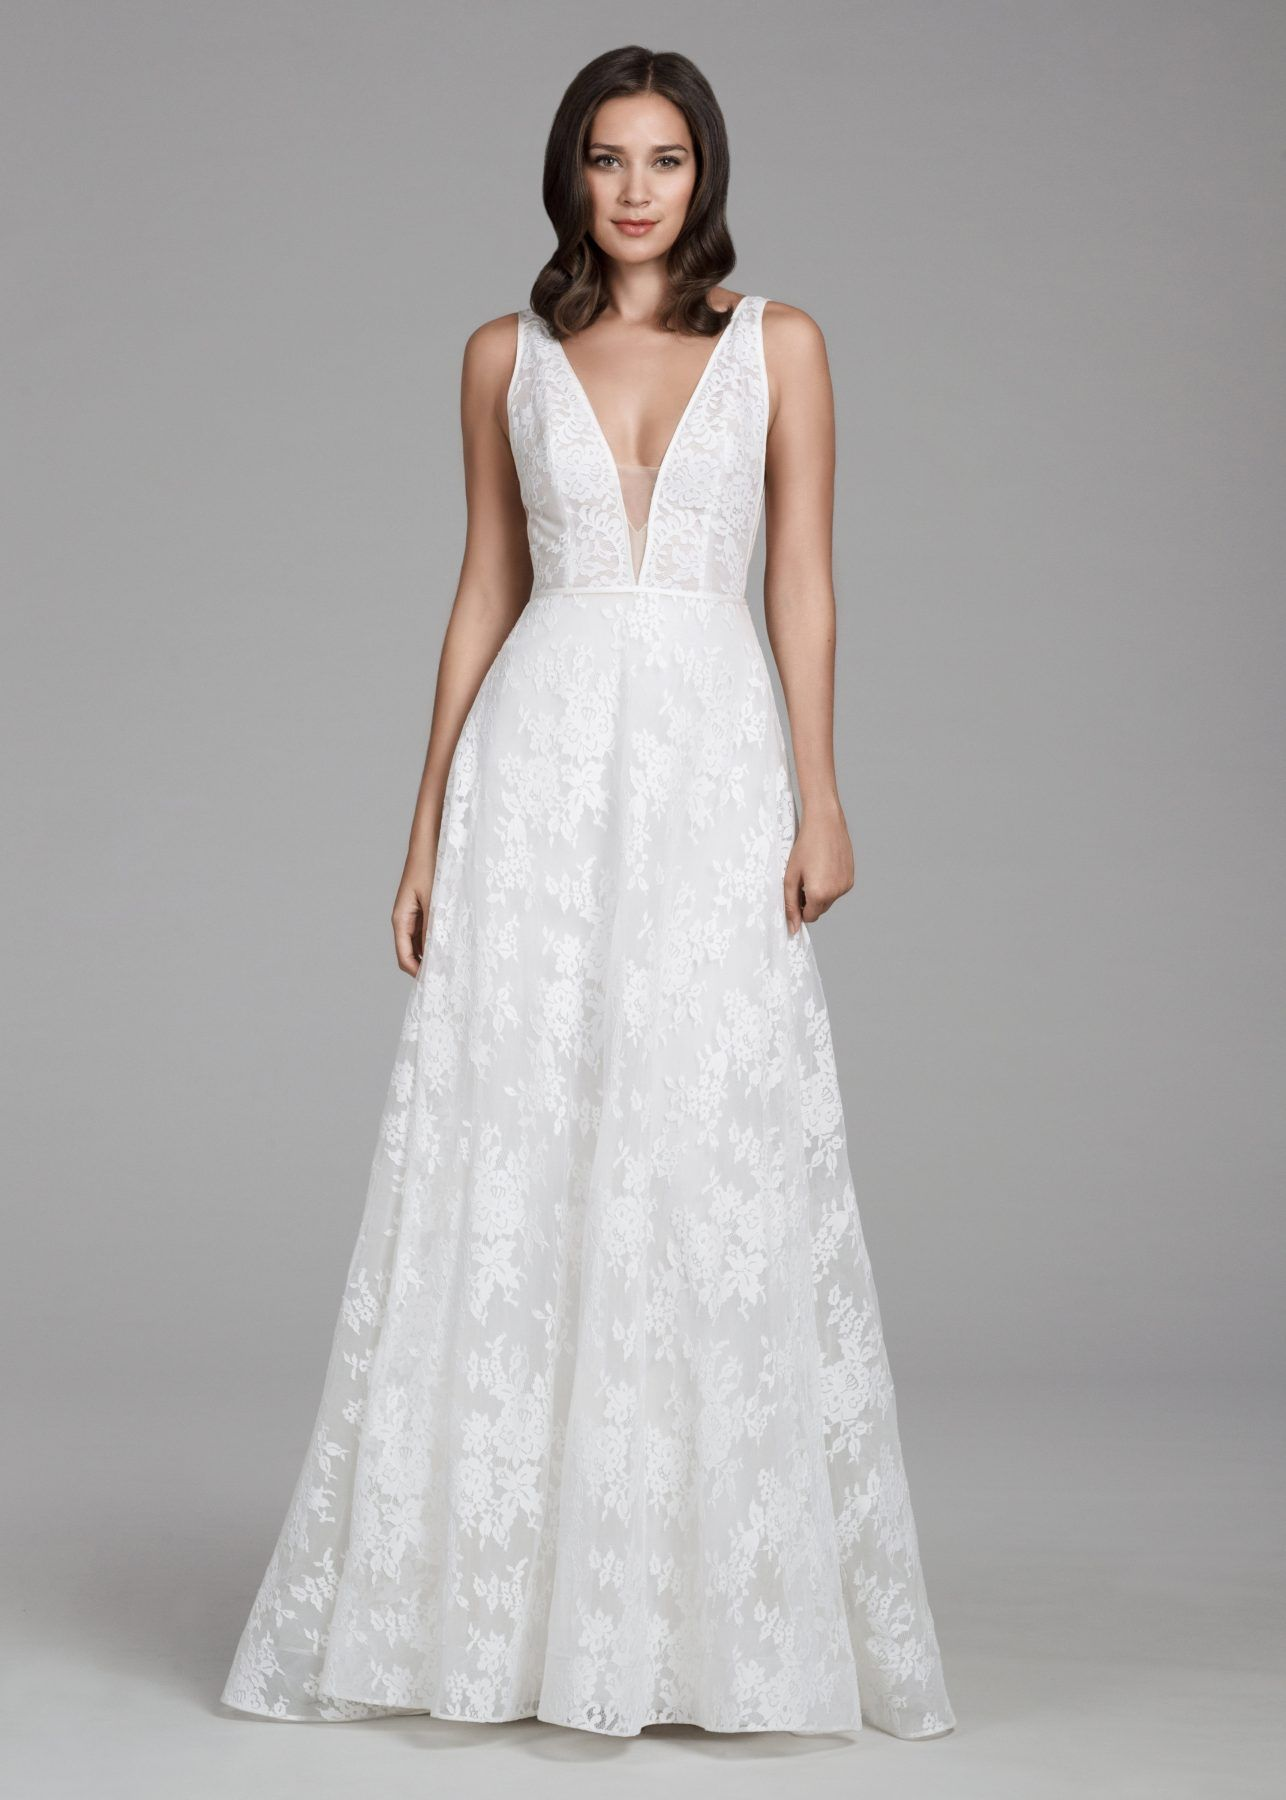 cde2a49d51d2 Romantic Lace V-neck A-line Dress in 2019 | Gowns | Wedding dresses ...